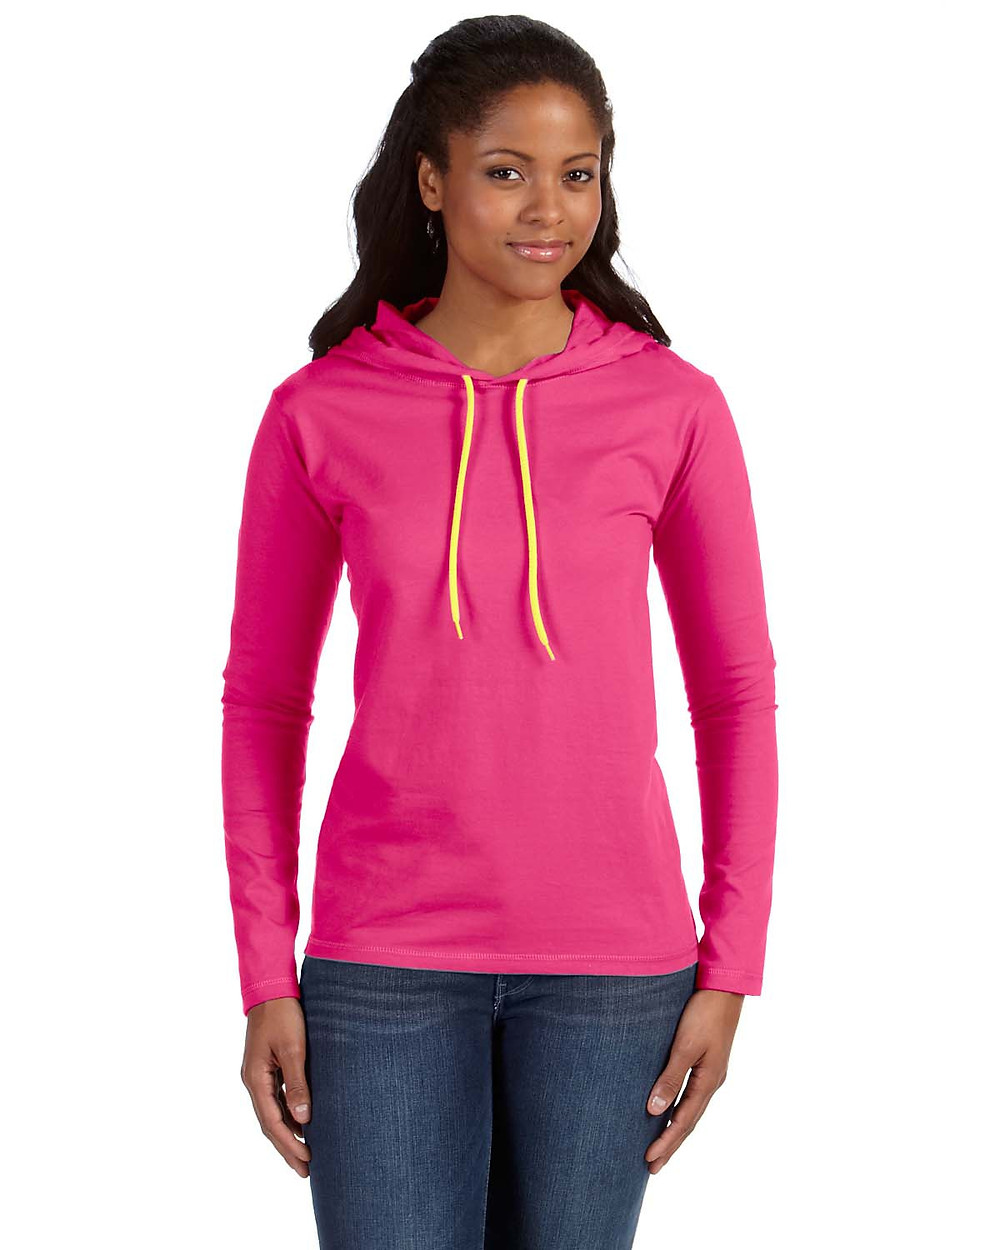 Discount Women's Hooded T-Shirts